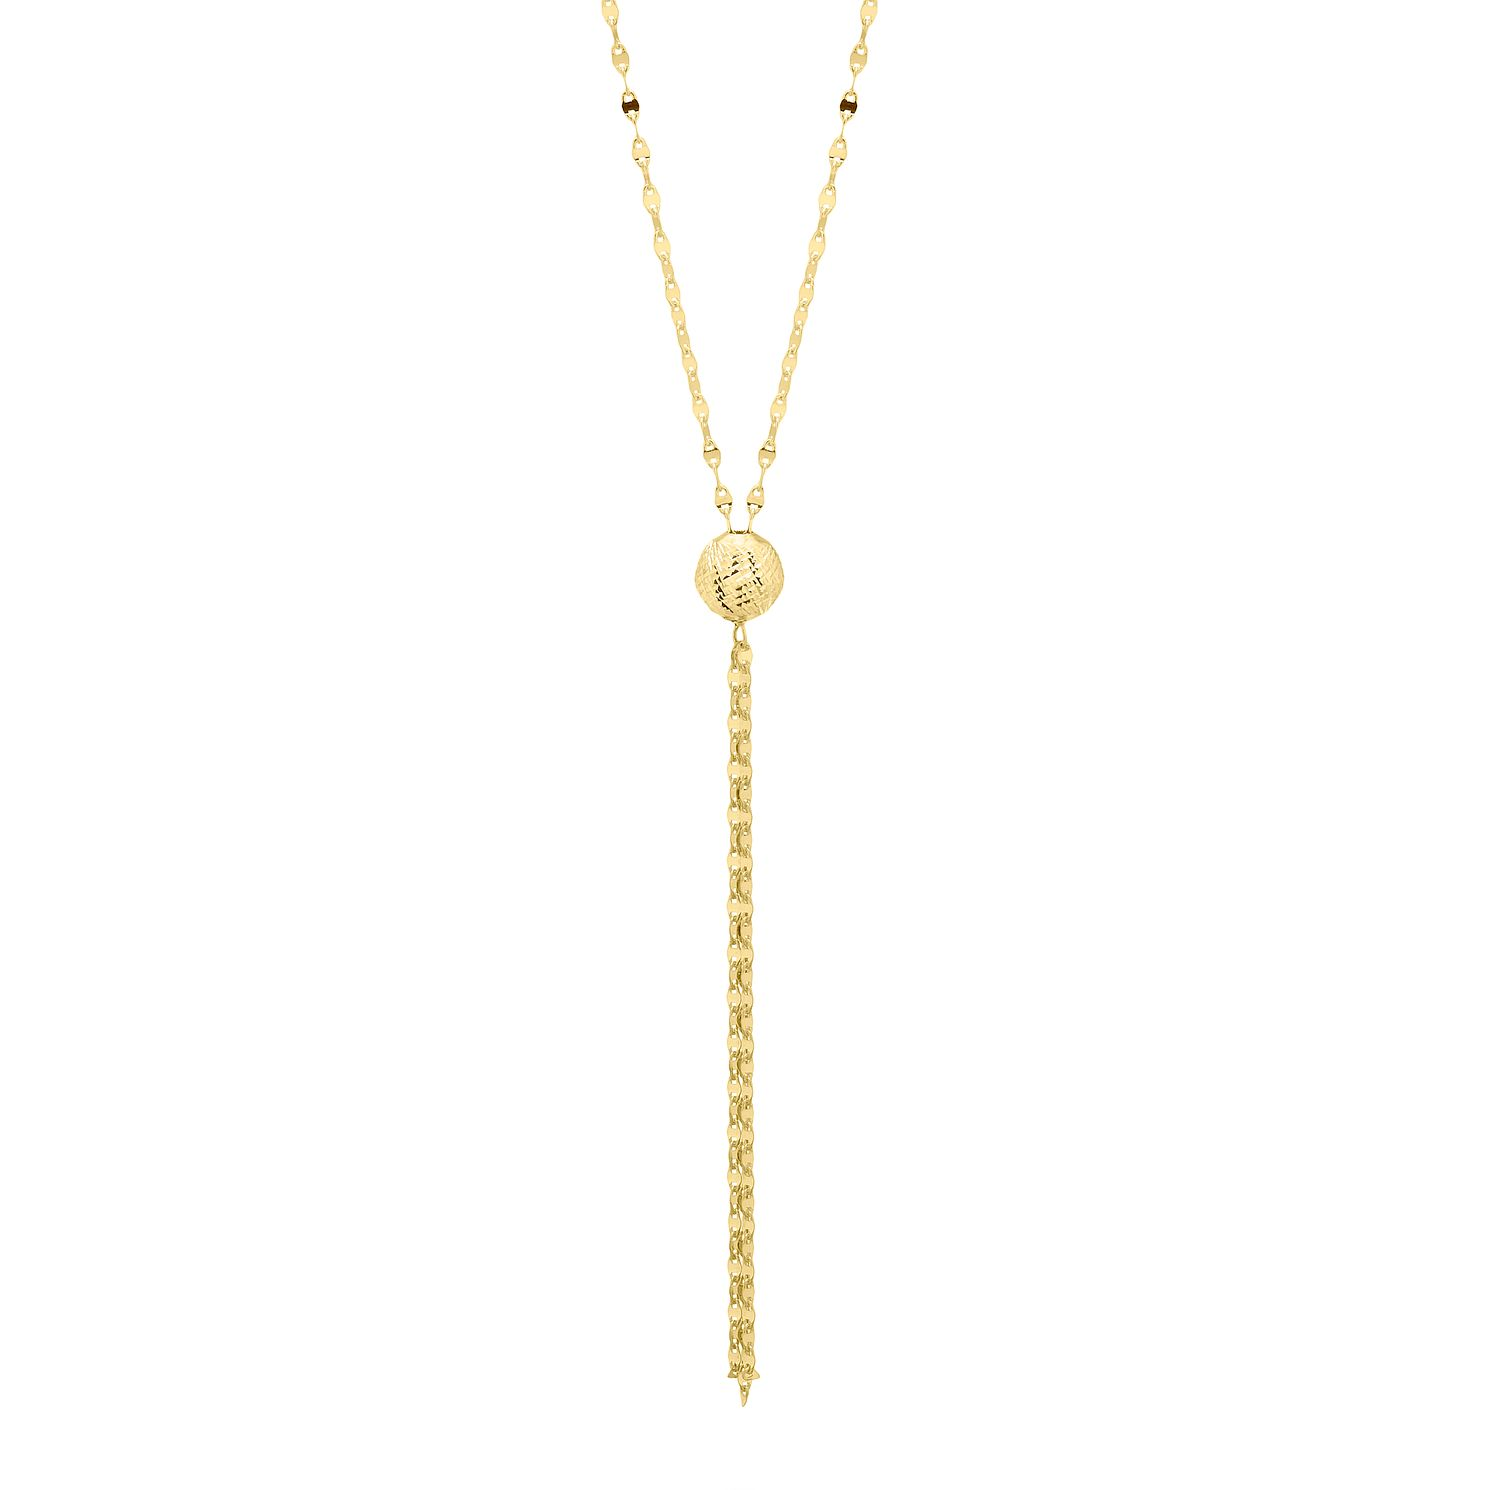 9ct Yellow Gold Diamond Cut Bead & Tassel Necklace - Product number 4672526